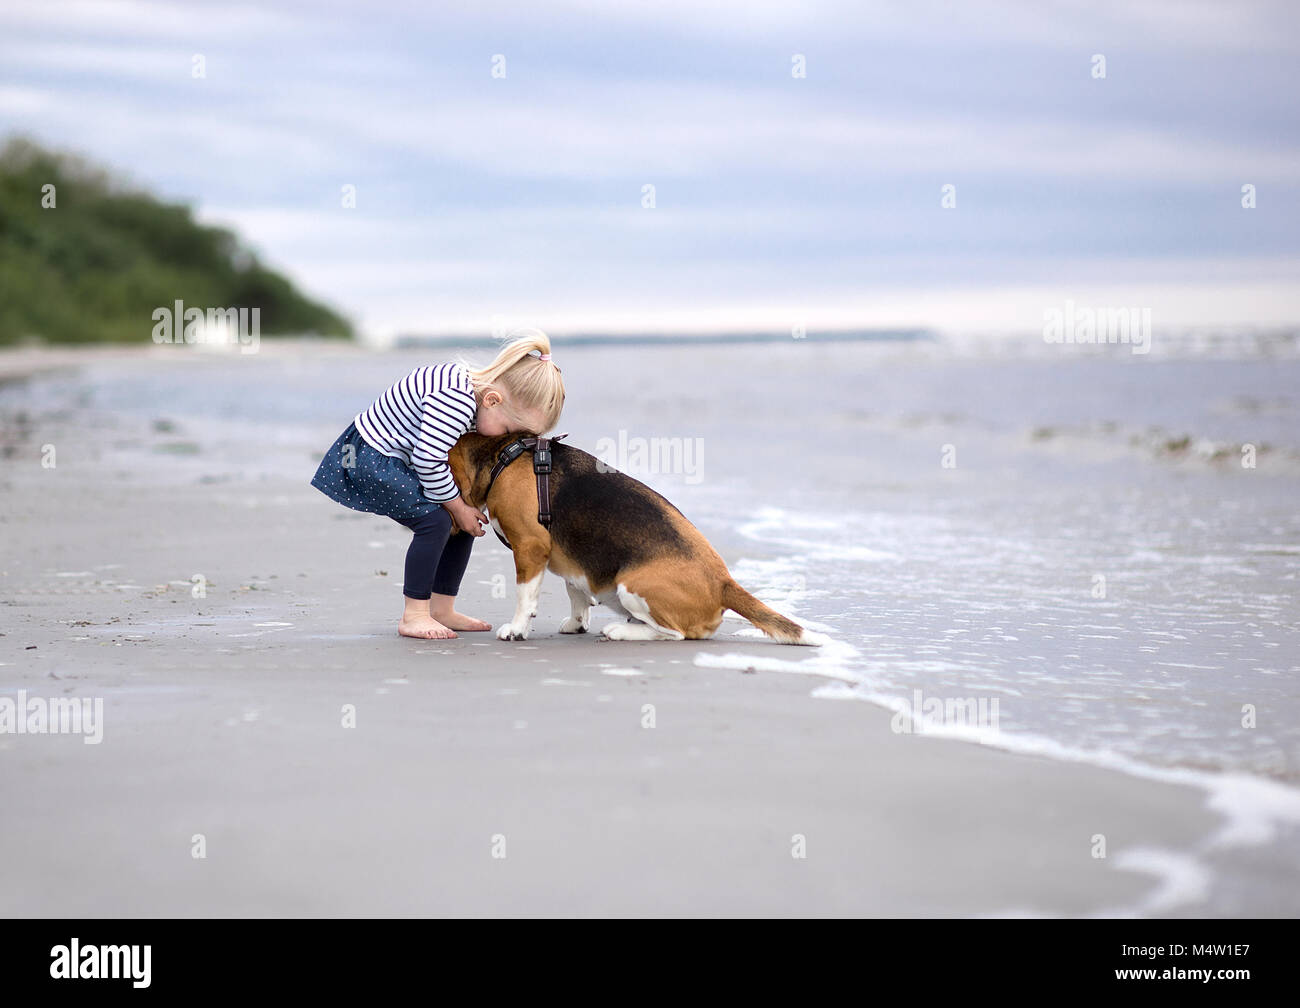 Most Inspiring Sea Beagle Adorable Dog - girl-and-cute-dog-beagle-by-the-sea-M4W1E7  You Should Have_208146  .jpg